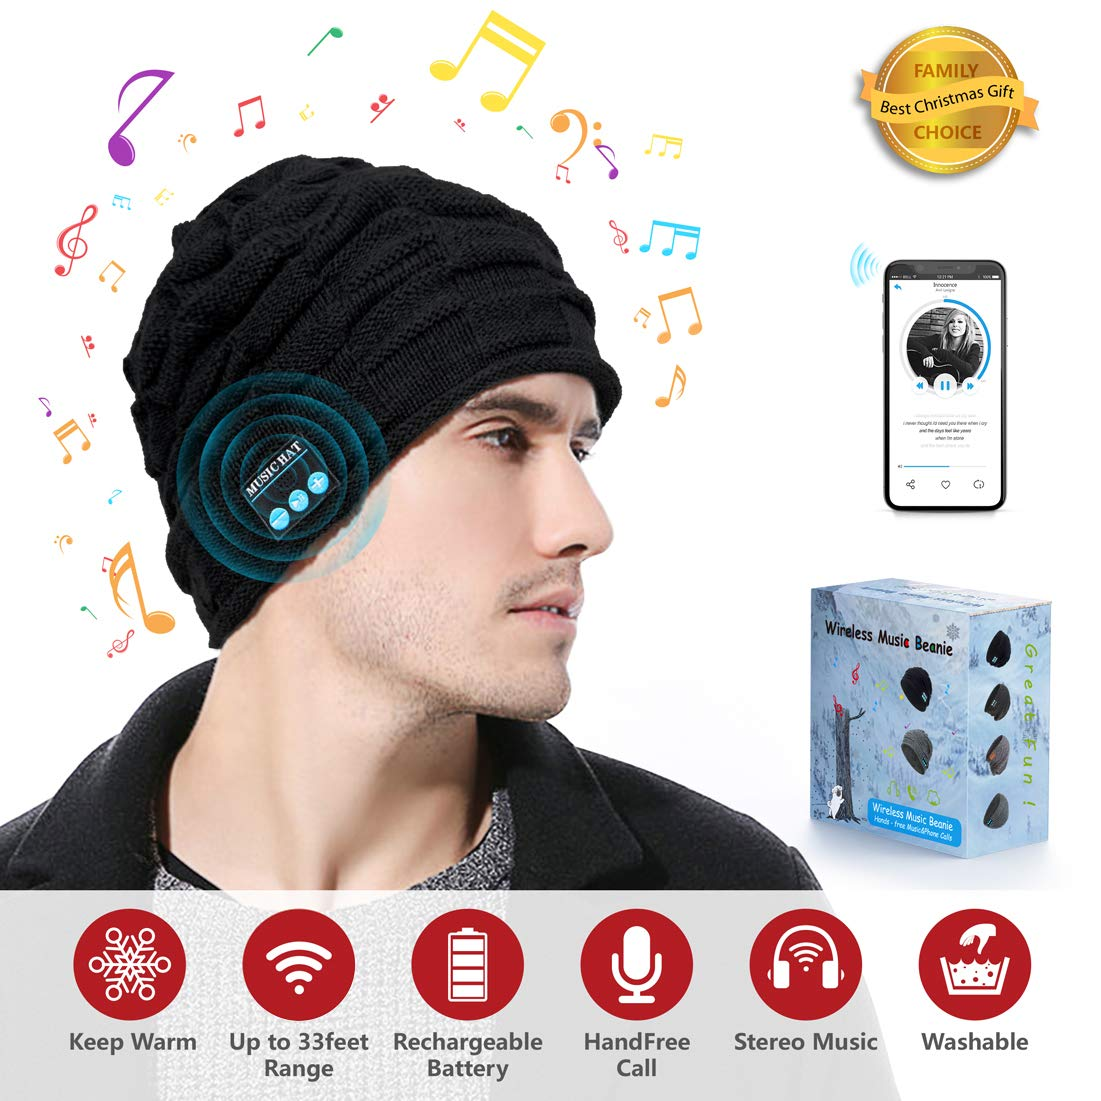 CreateGreat Bluetooth Beanie Hat, Wireless Smart Headphone Premium Knit Cap with Speaker & Mic, Unisex Headset Musical Cap for Outdoor Sports Running Skiing Hiking Christmas Birthday Gifts(Black01)